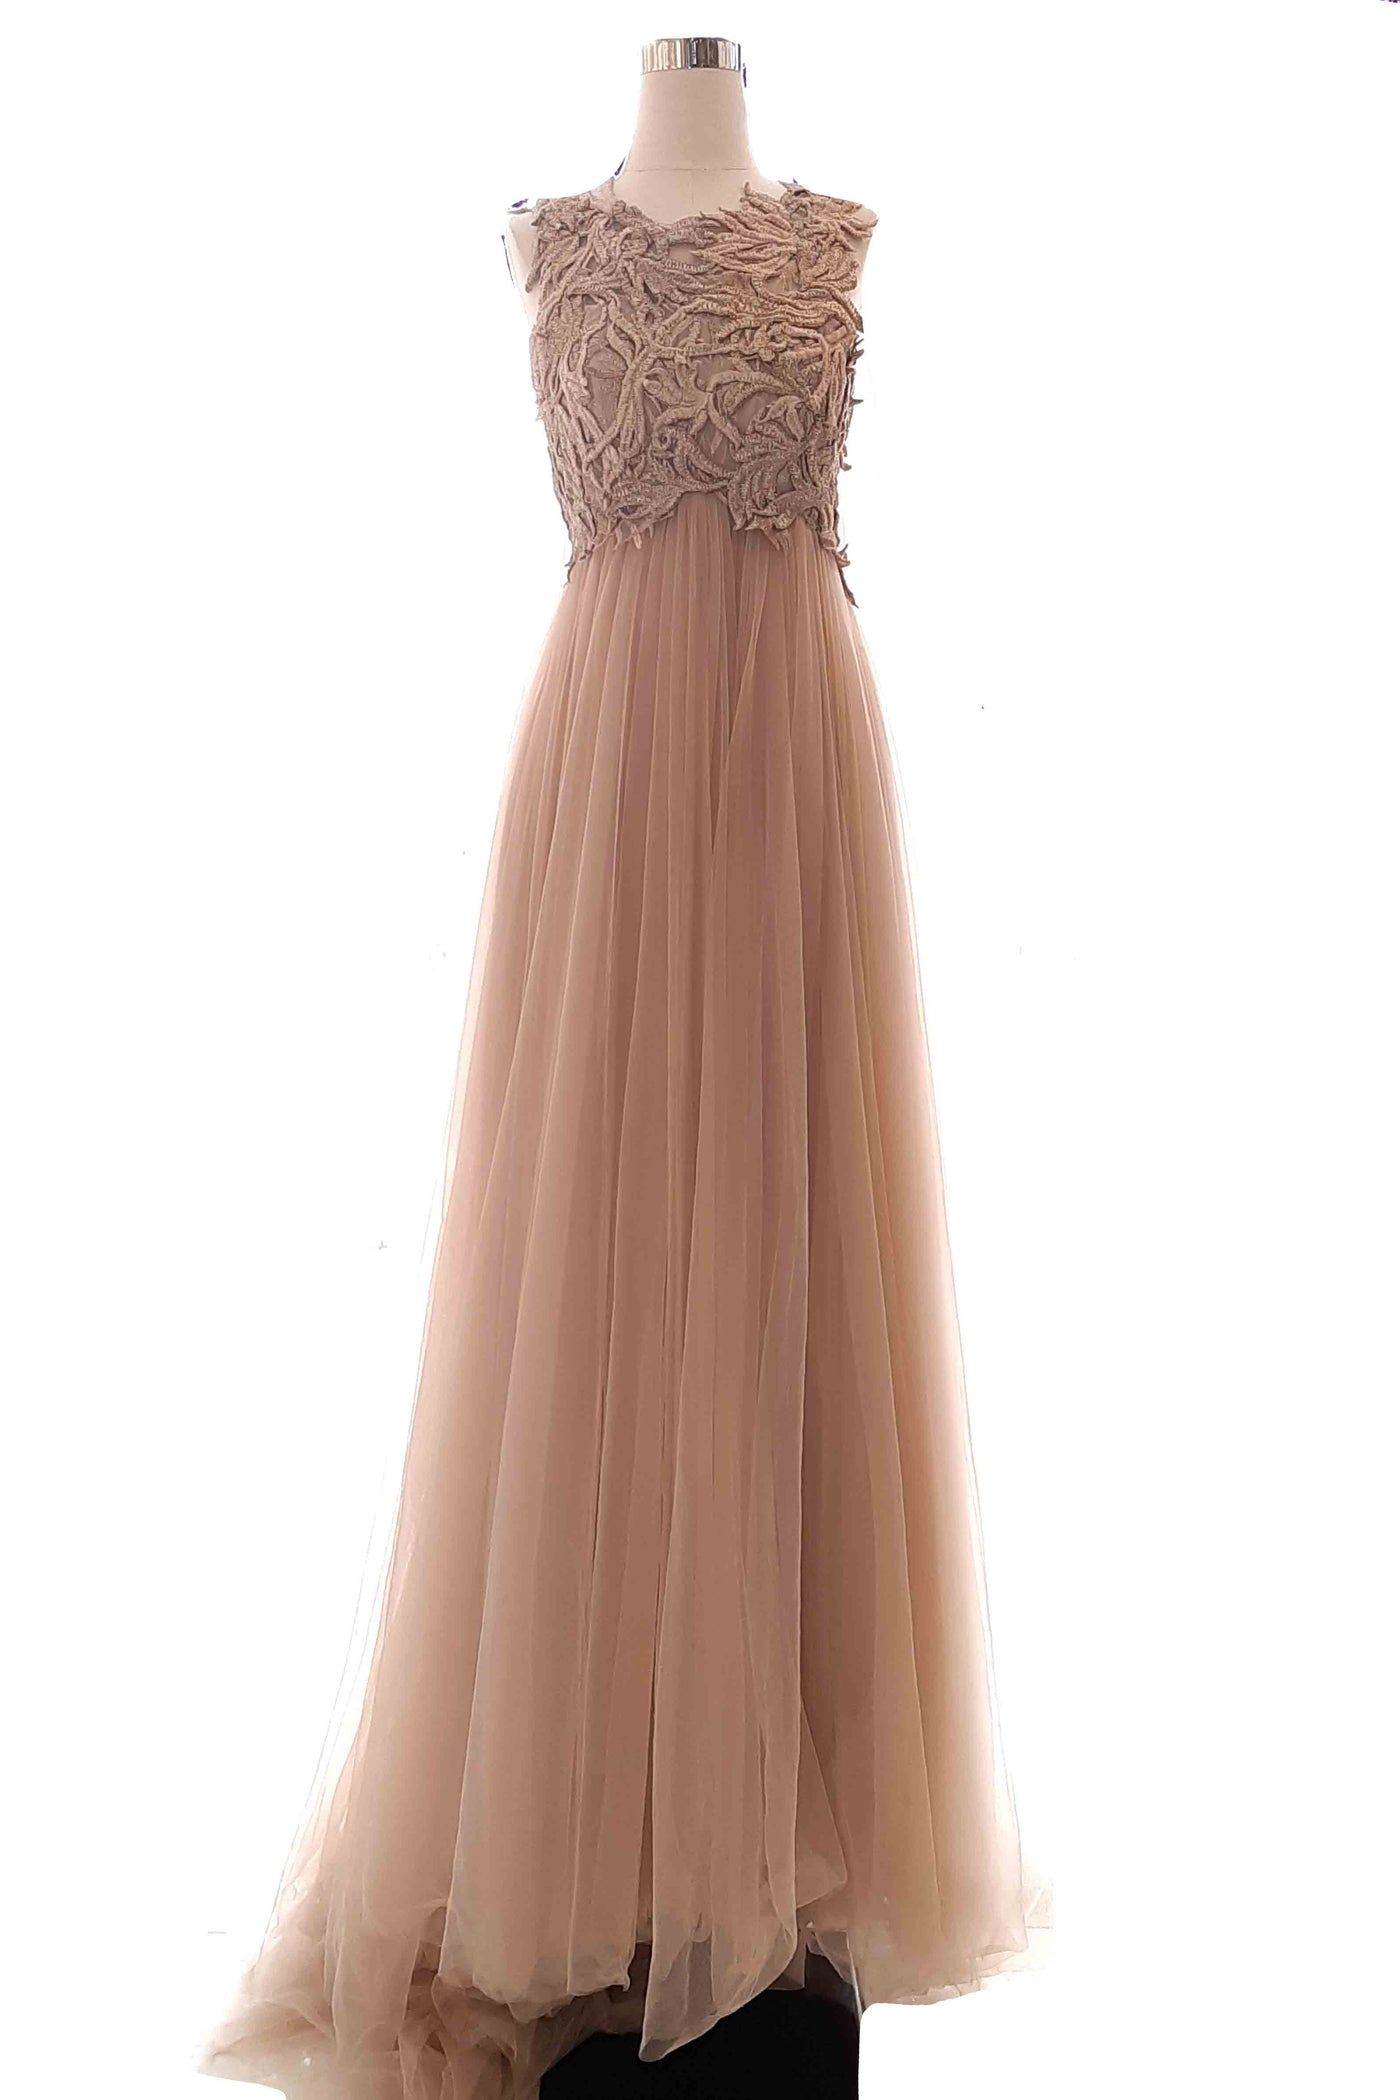 Buy : Liliana Lim - Beige Sleevless Tulle Gown